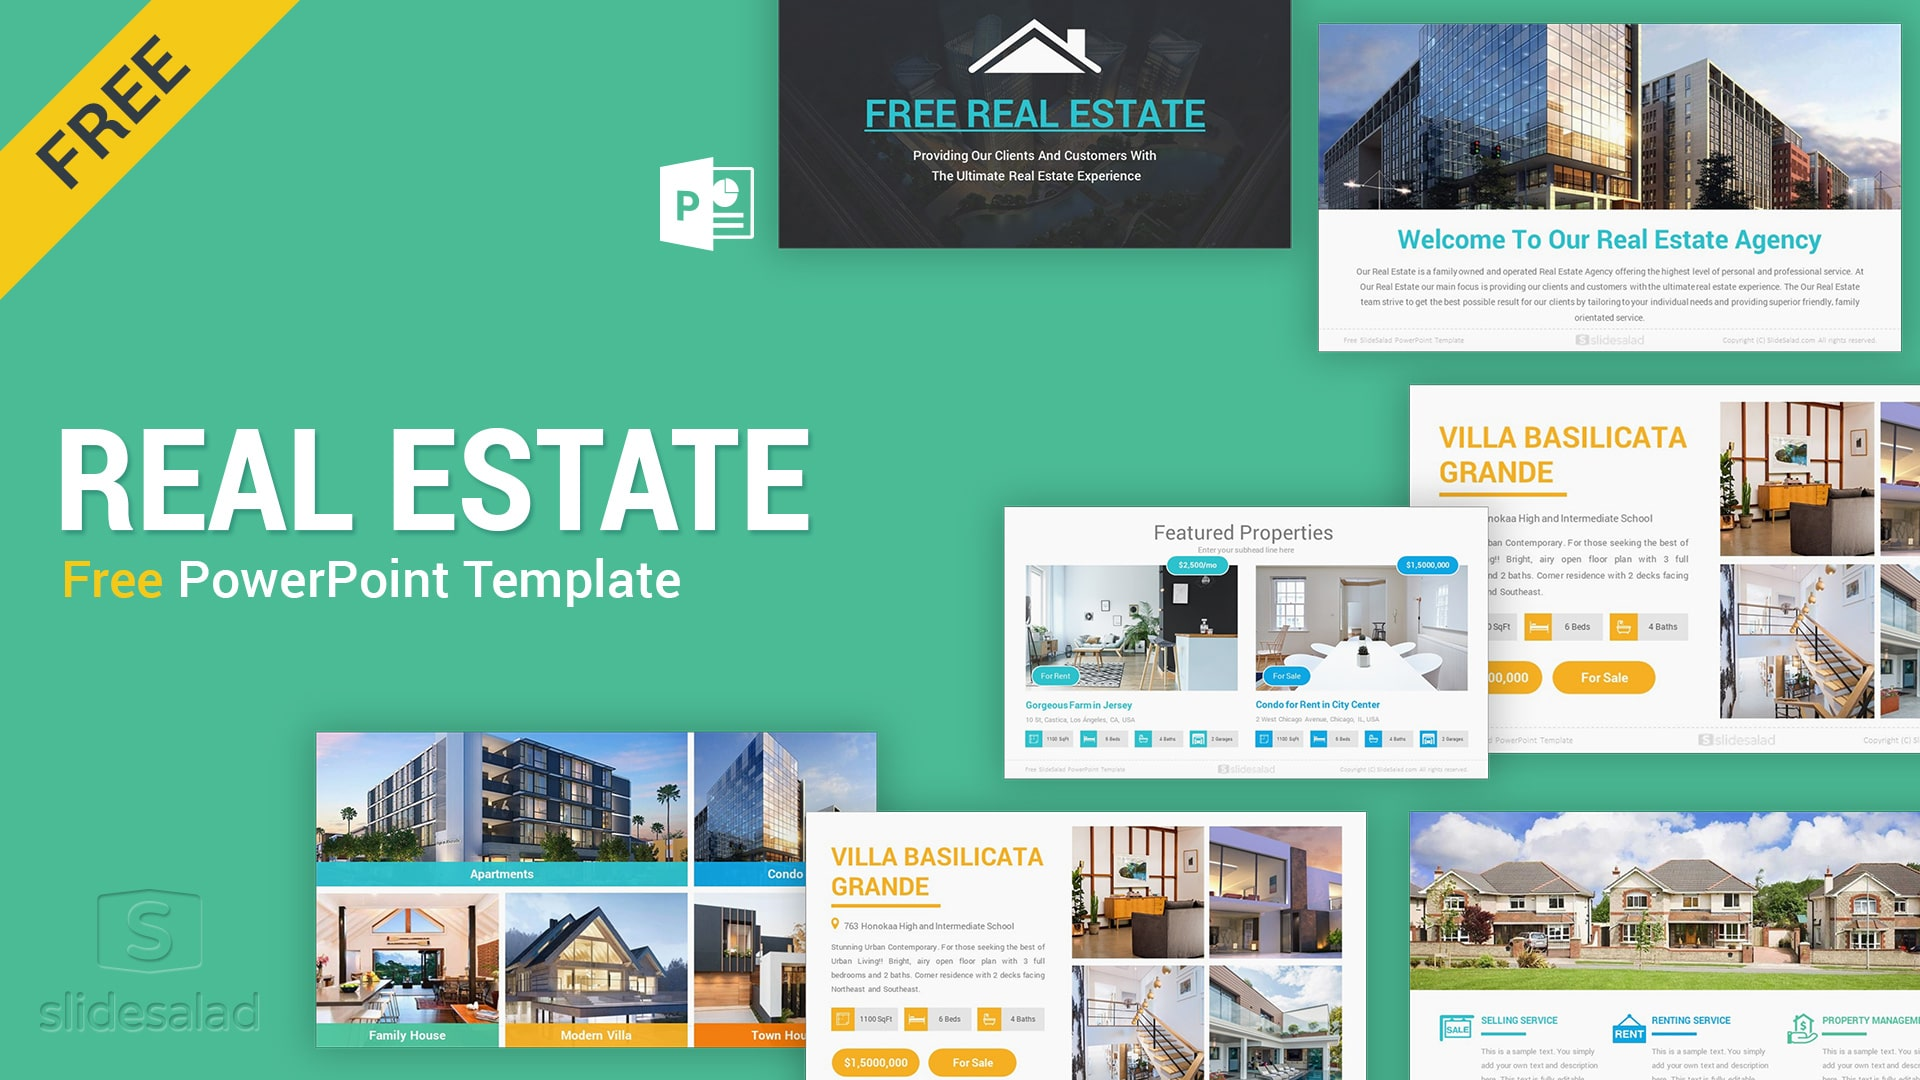 Free Real Estate PowerPoint Template Design – All in One Free Real Estate PPT Template